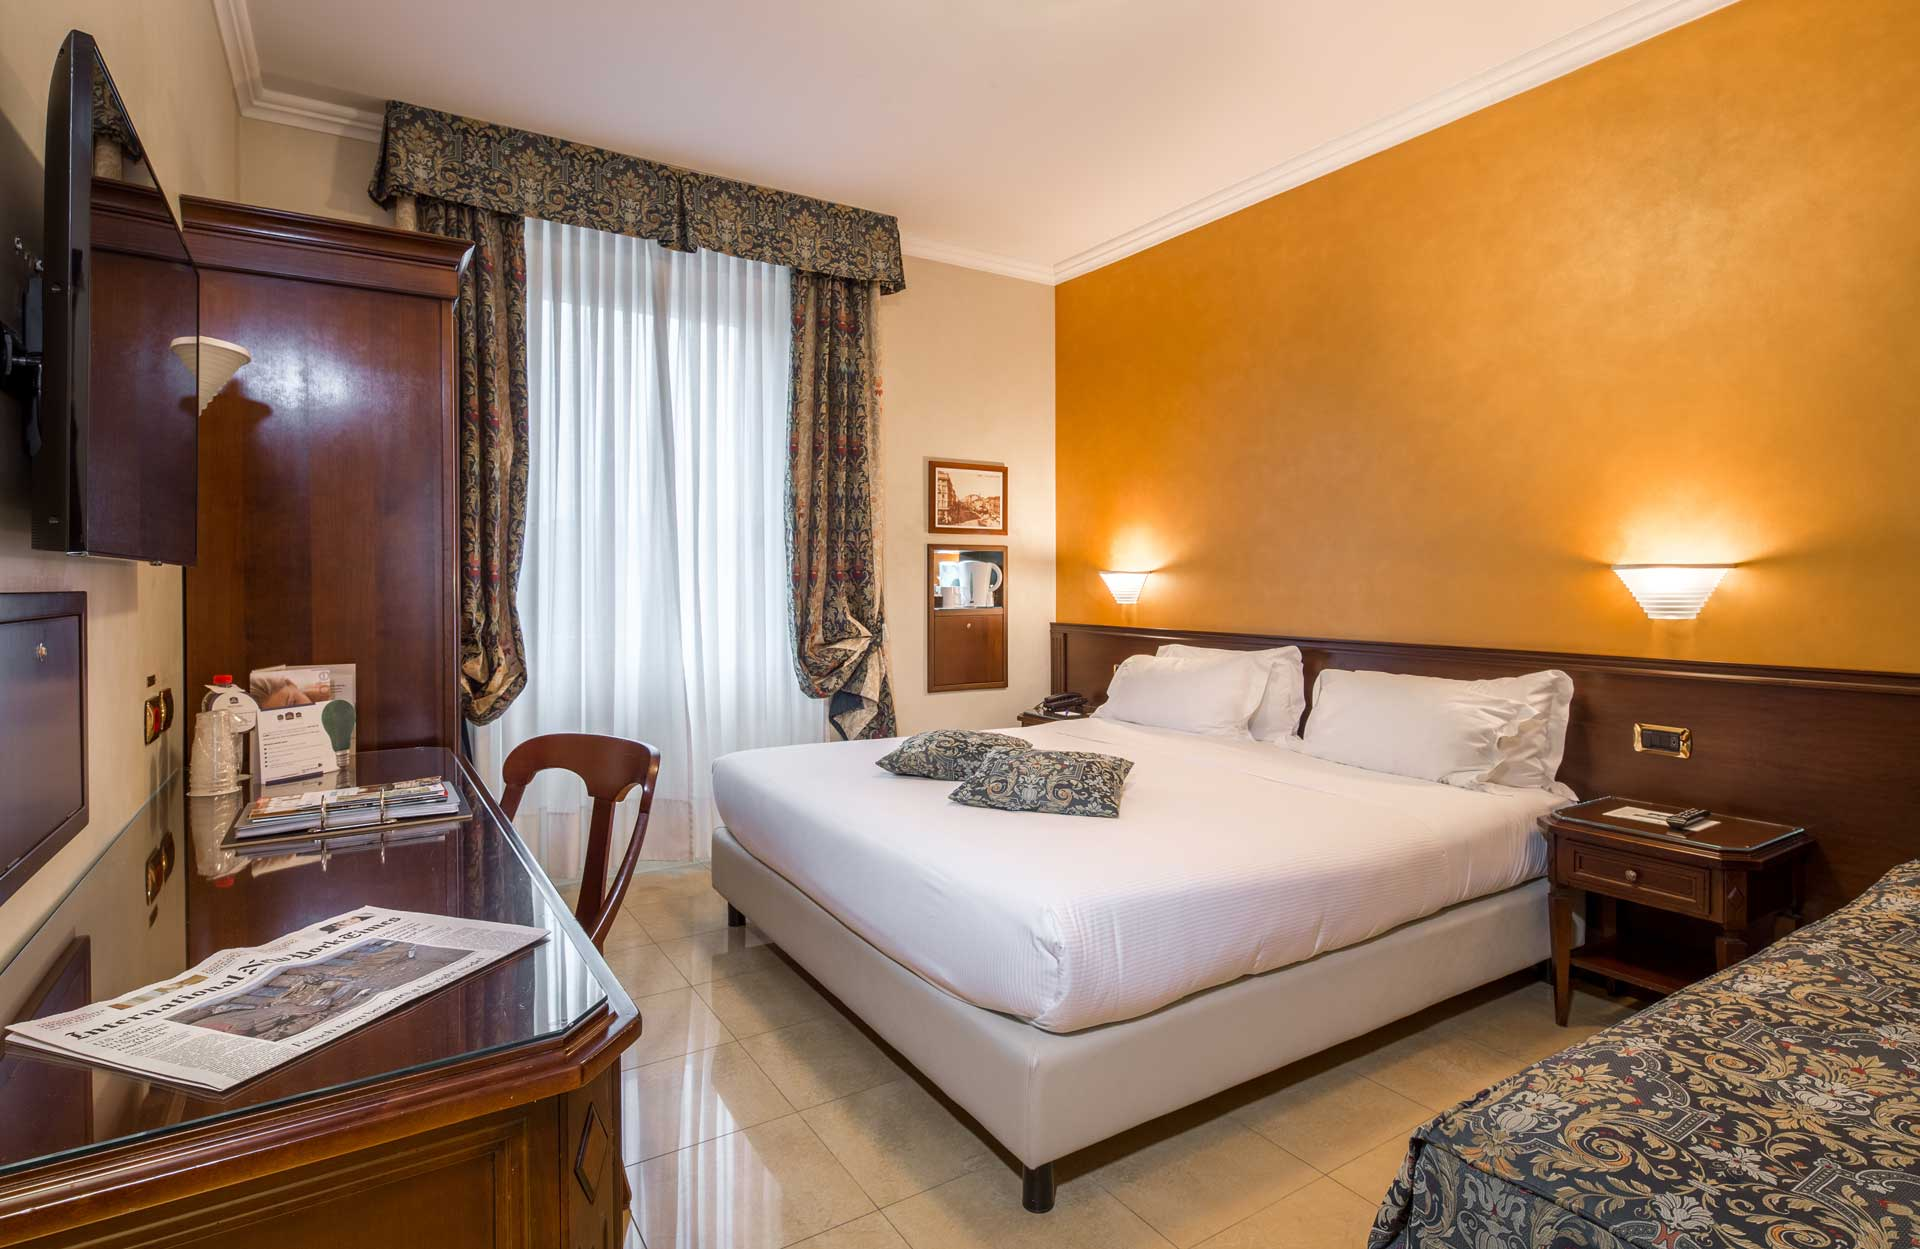 News events in milan hotel galles best western plus for Hotel galles milano